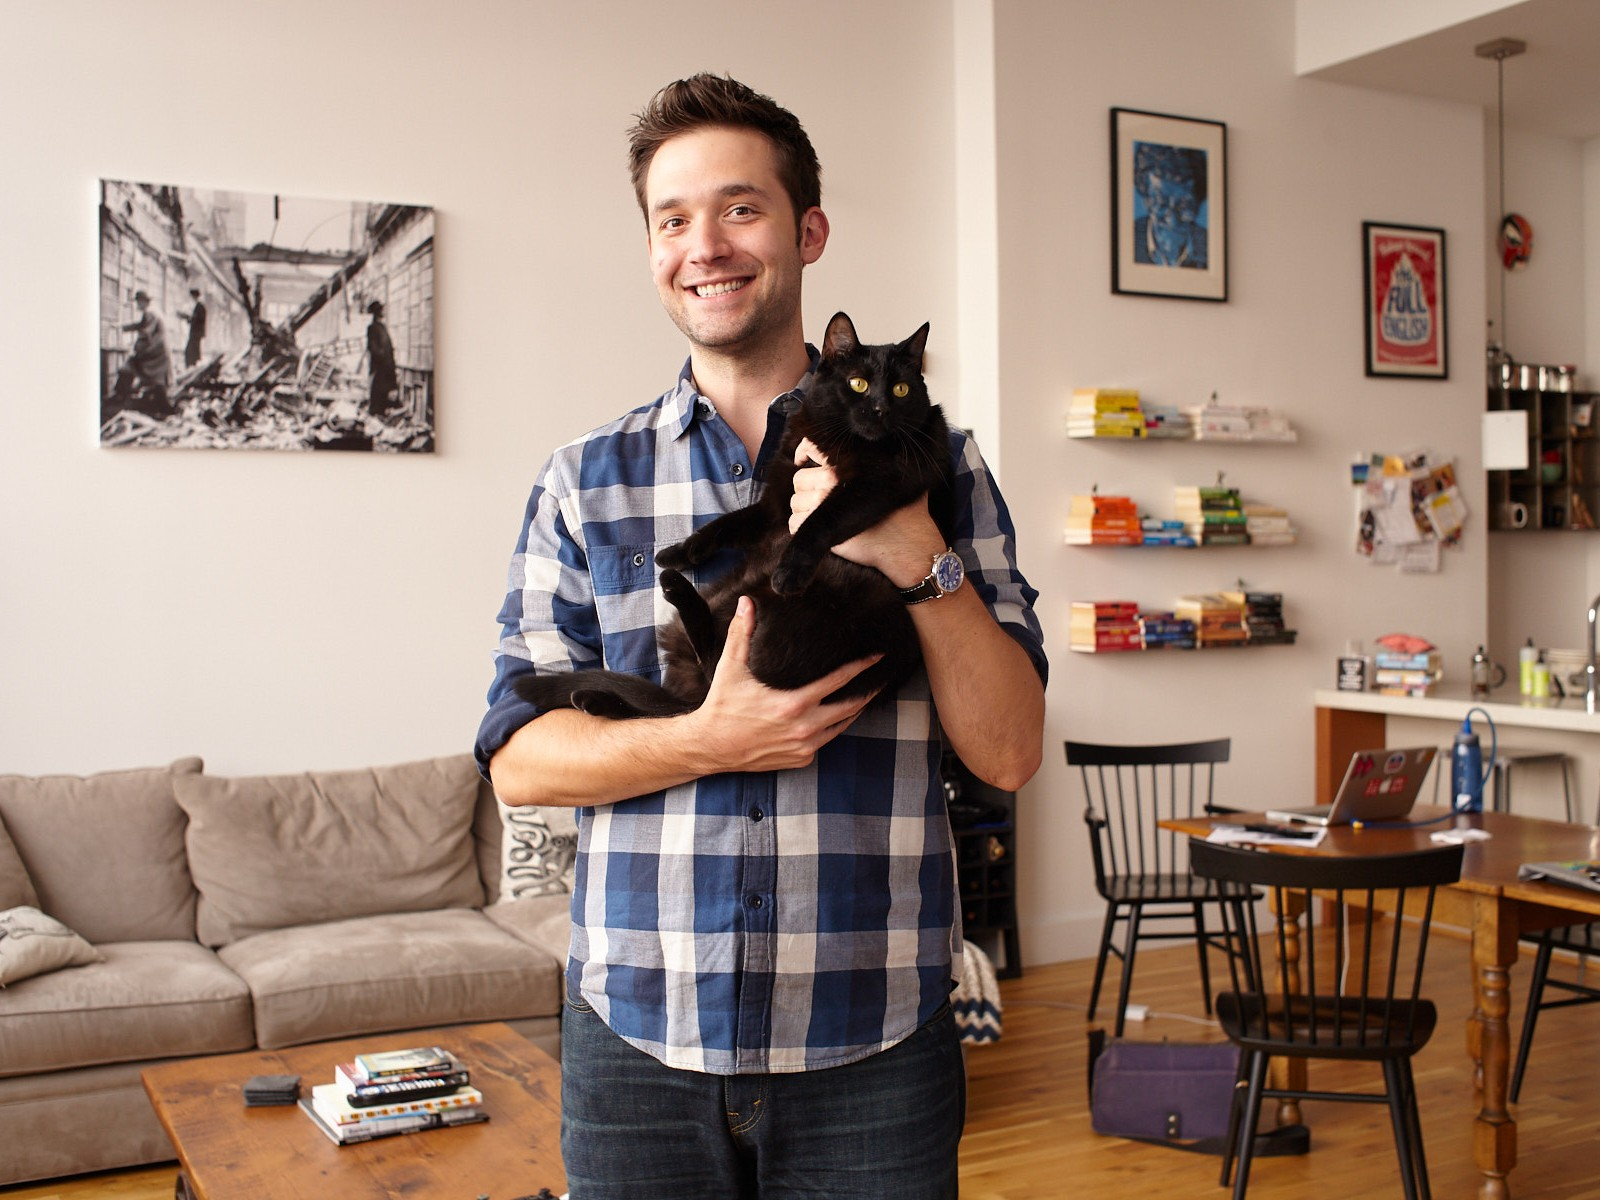 Portraits of Reddit co-founder Alexis Ohanian in Brooklyn NYC apartment holding his kat Karma